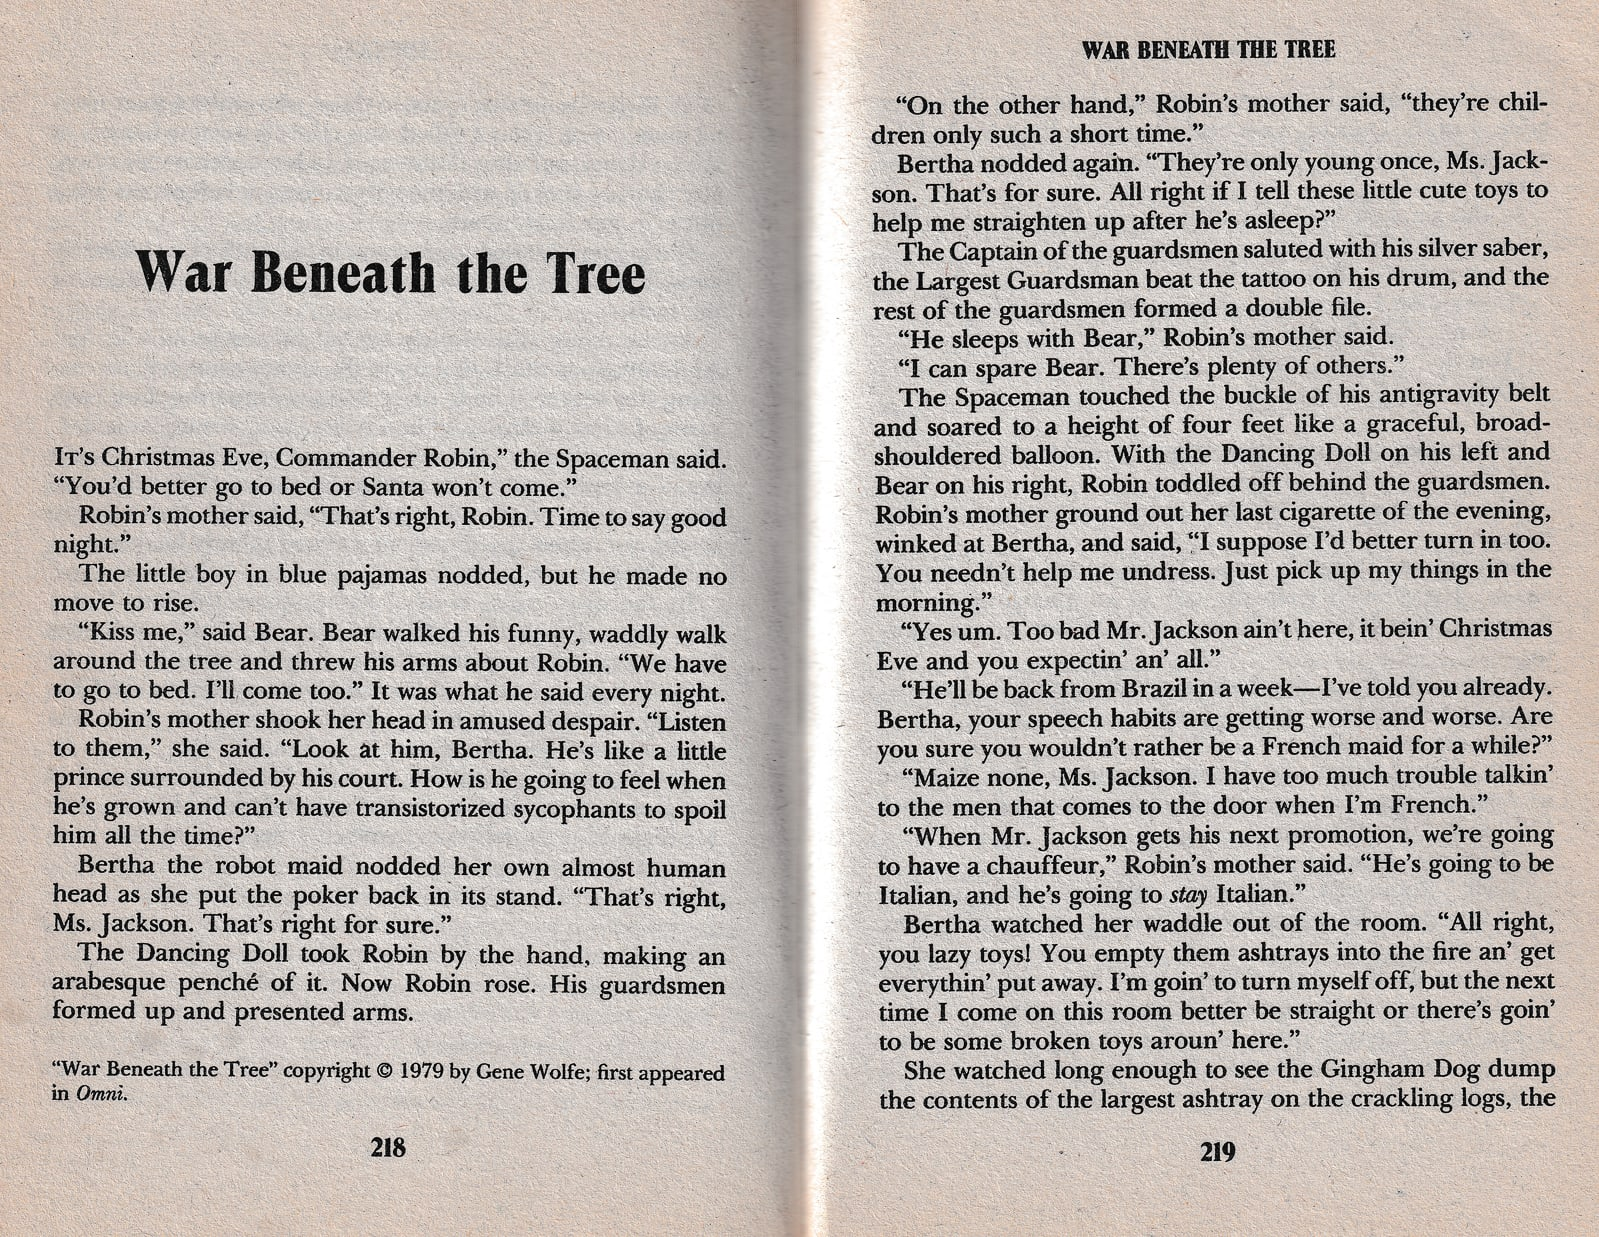 Scanned book